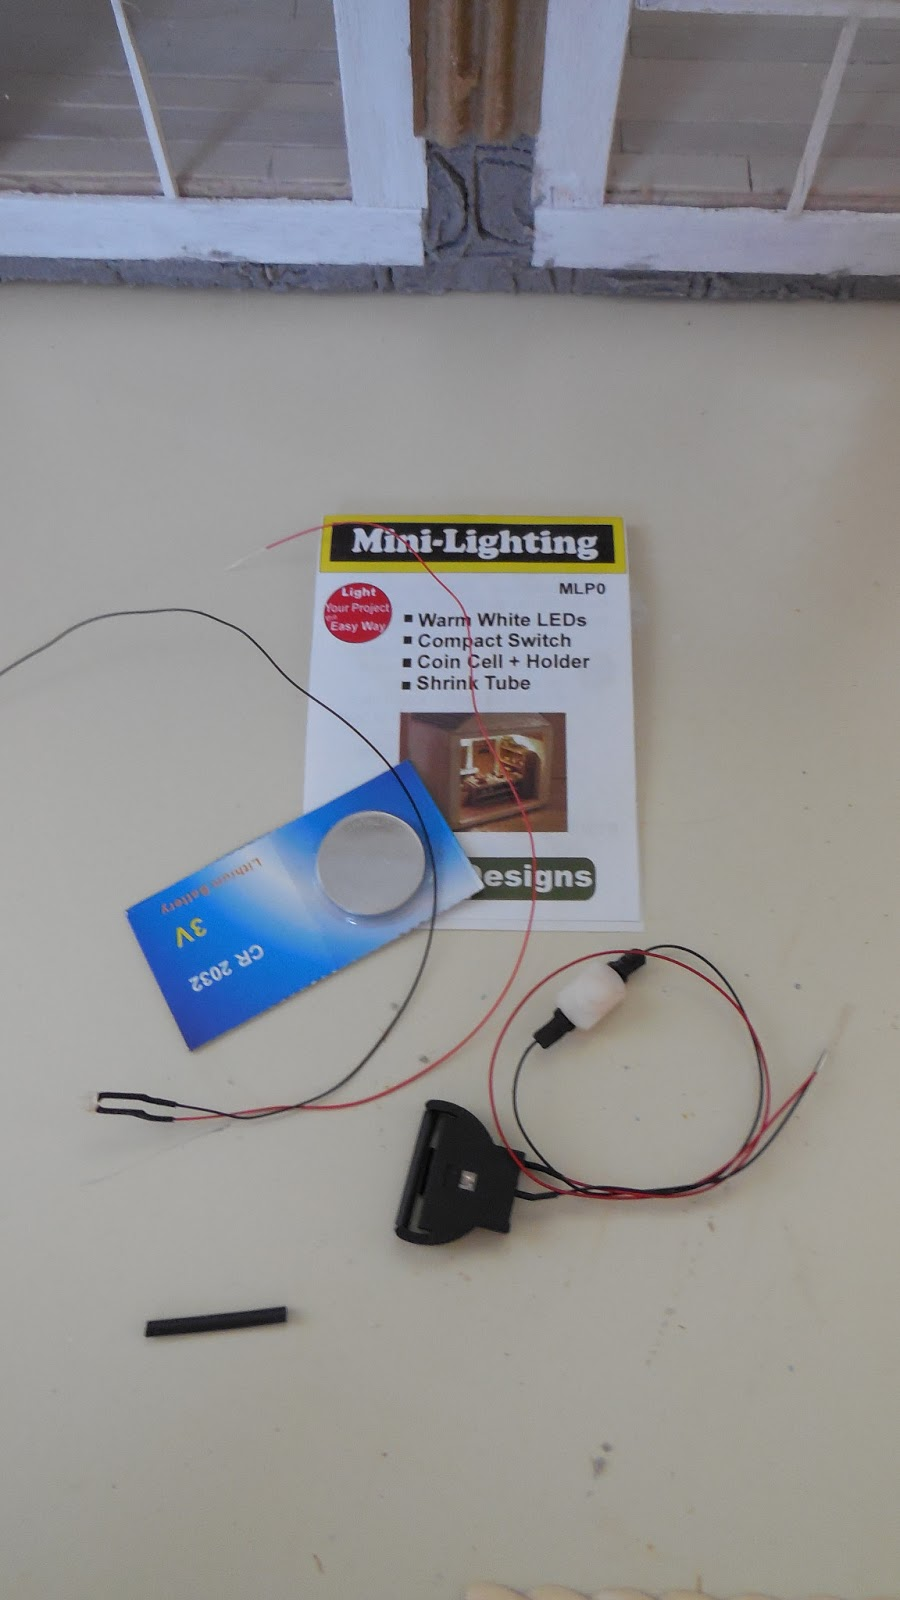 Cinderella Moments Little White Cottage Dollhouse Wiring Supplies I Use This Battery Operated Light Kit From Evan Designs Http Modeltrainsoftwarecom Mihtml They Are A Fabulous Company To Order